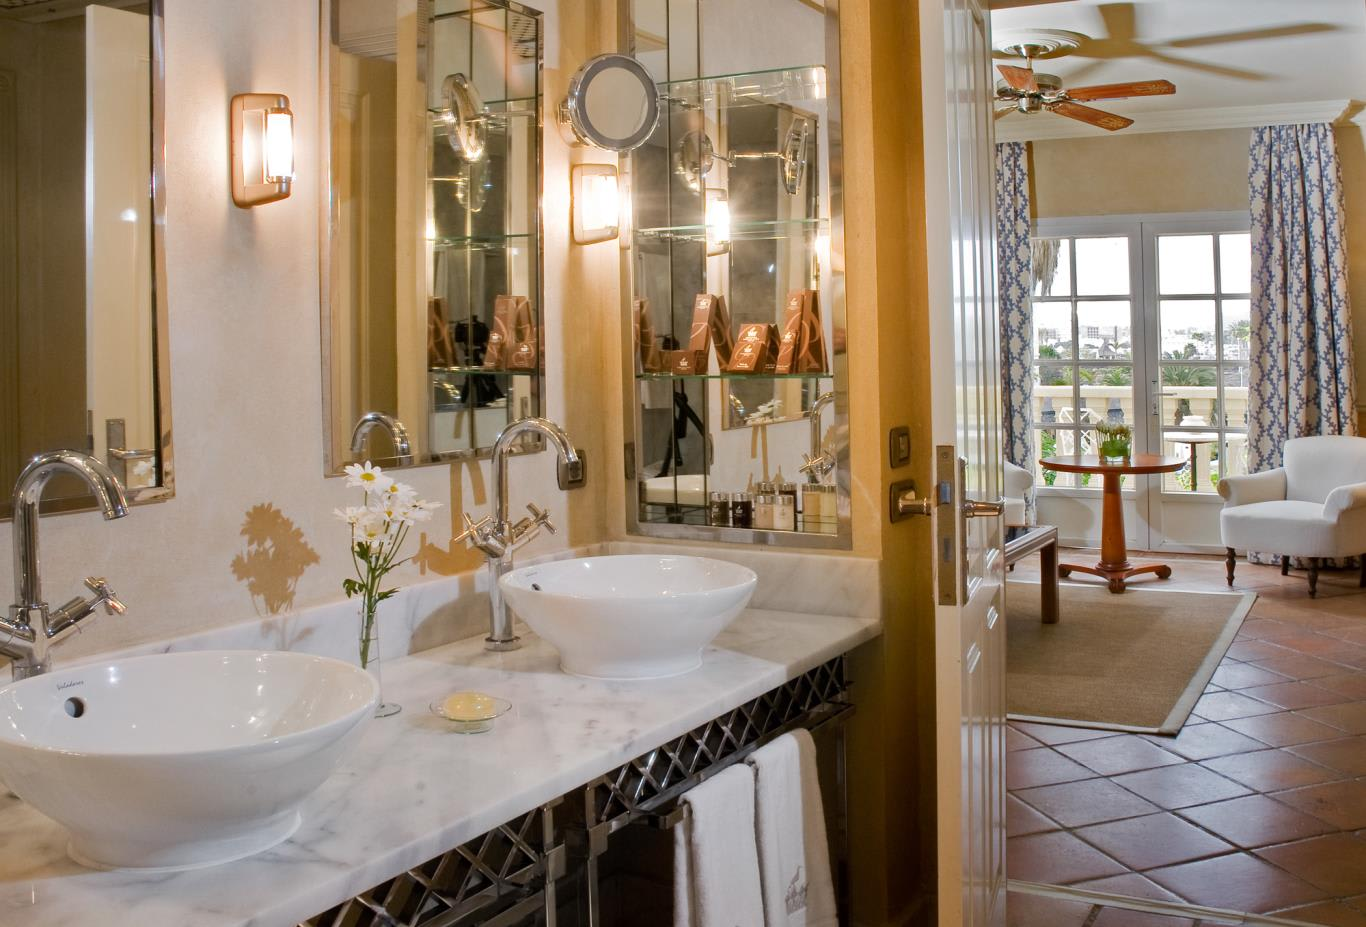 Suite Casas Ducales bathroom